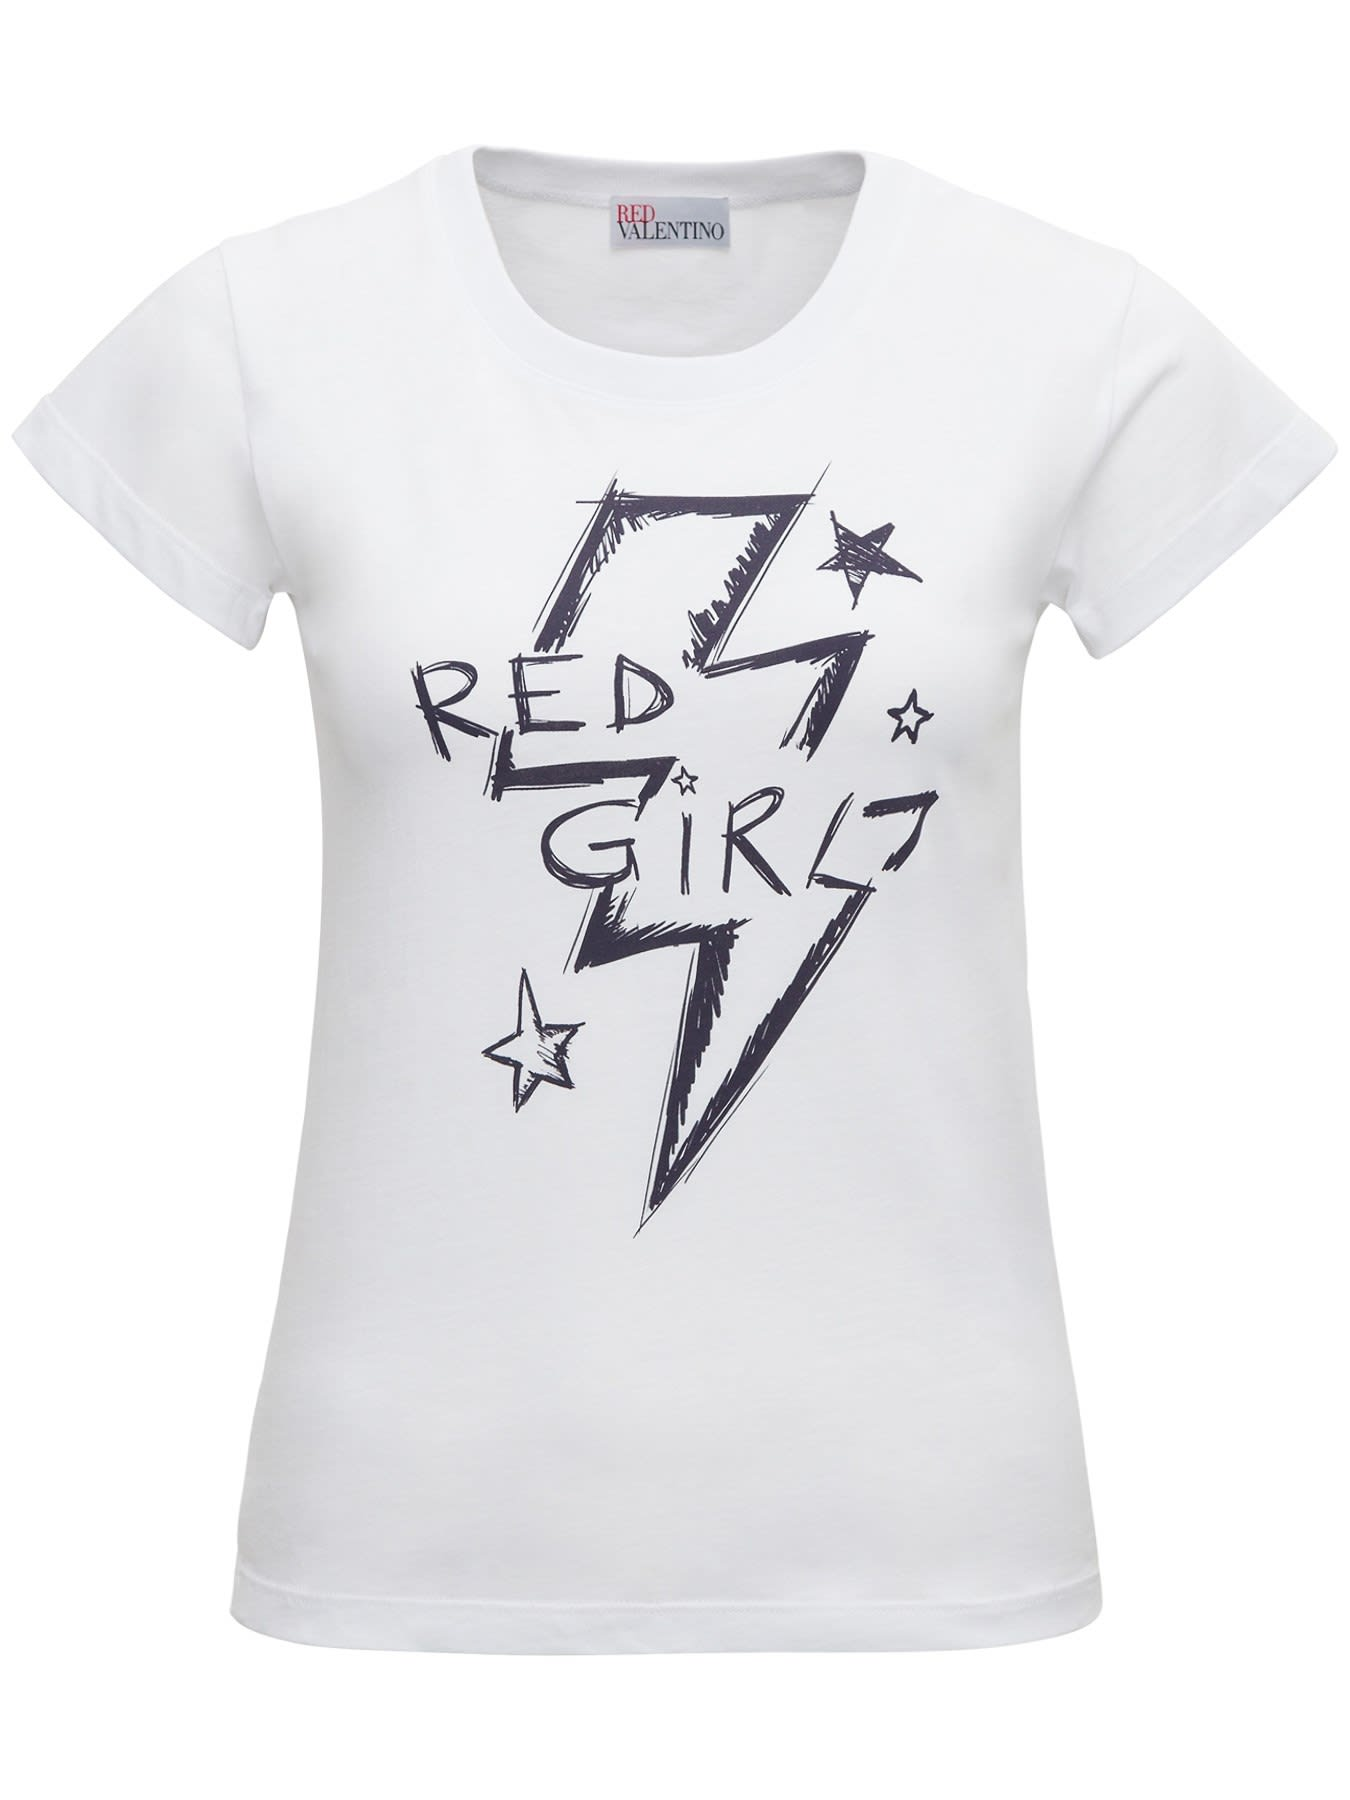 T-shirt Crew-neck White Cotton Red Girl print Short sleevesComposition: 100% Cotton